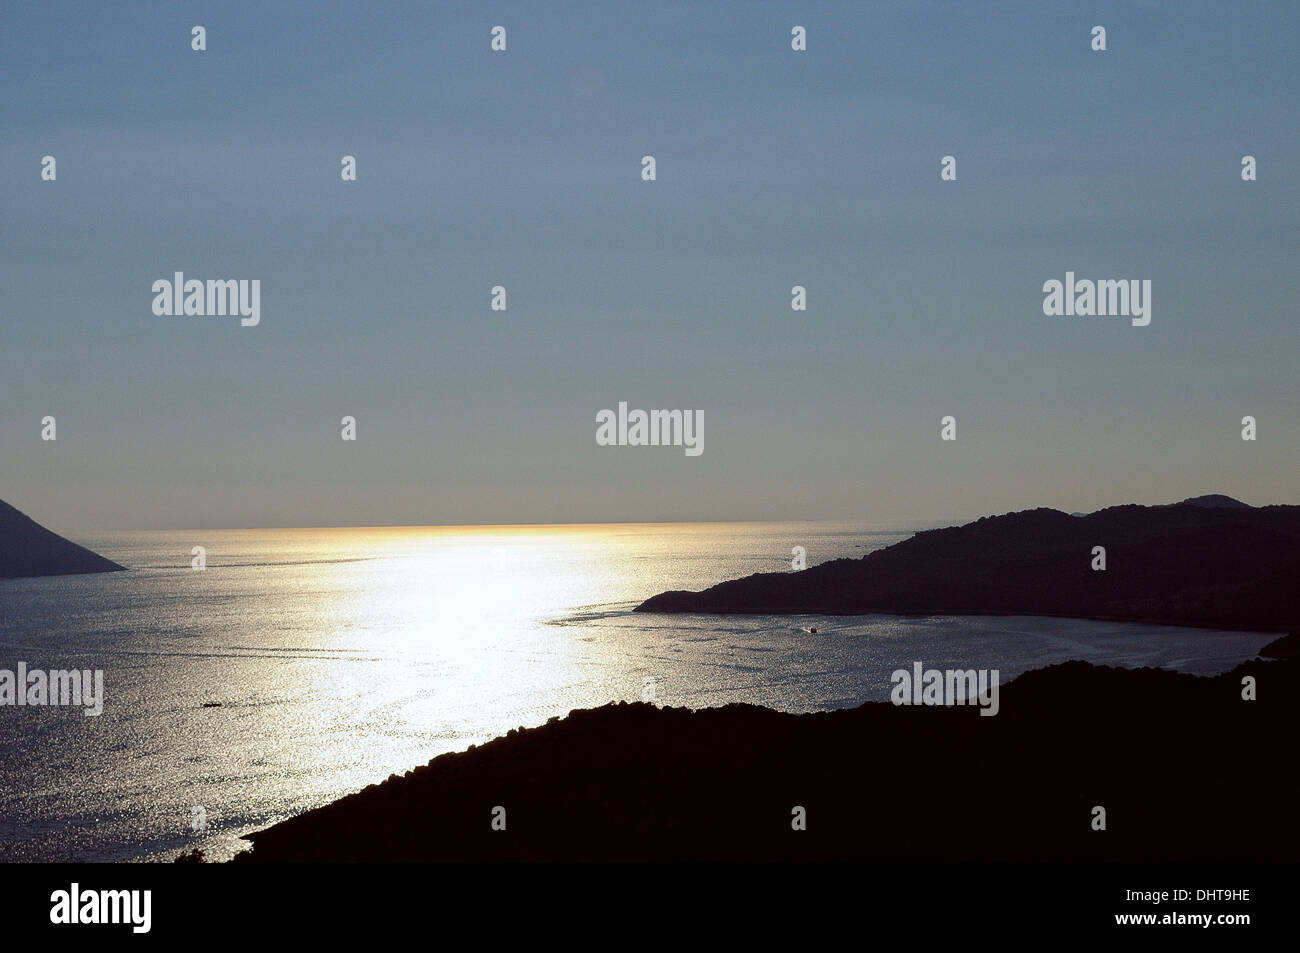 evenings on the Aegean - Stock Image